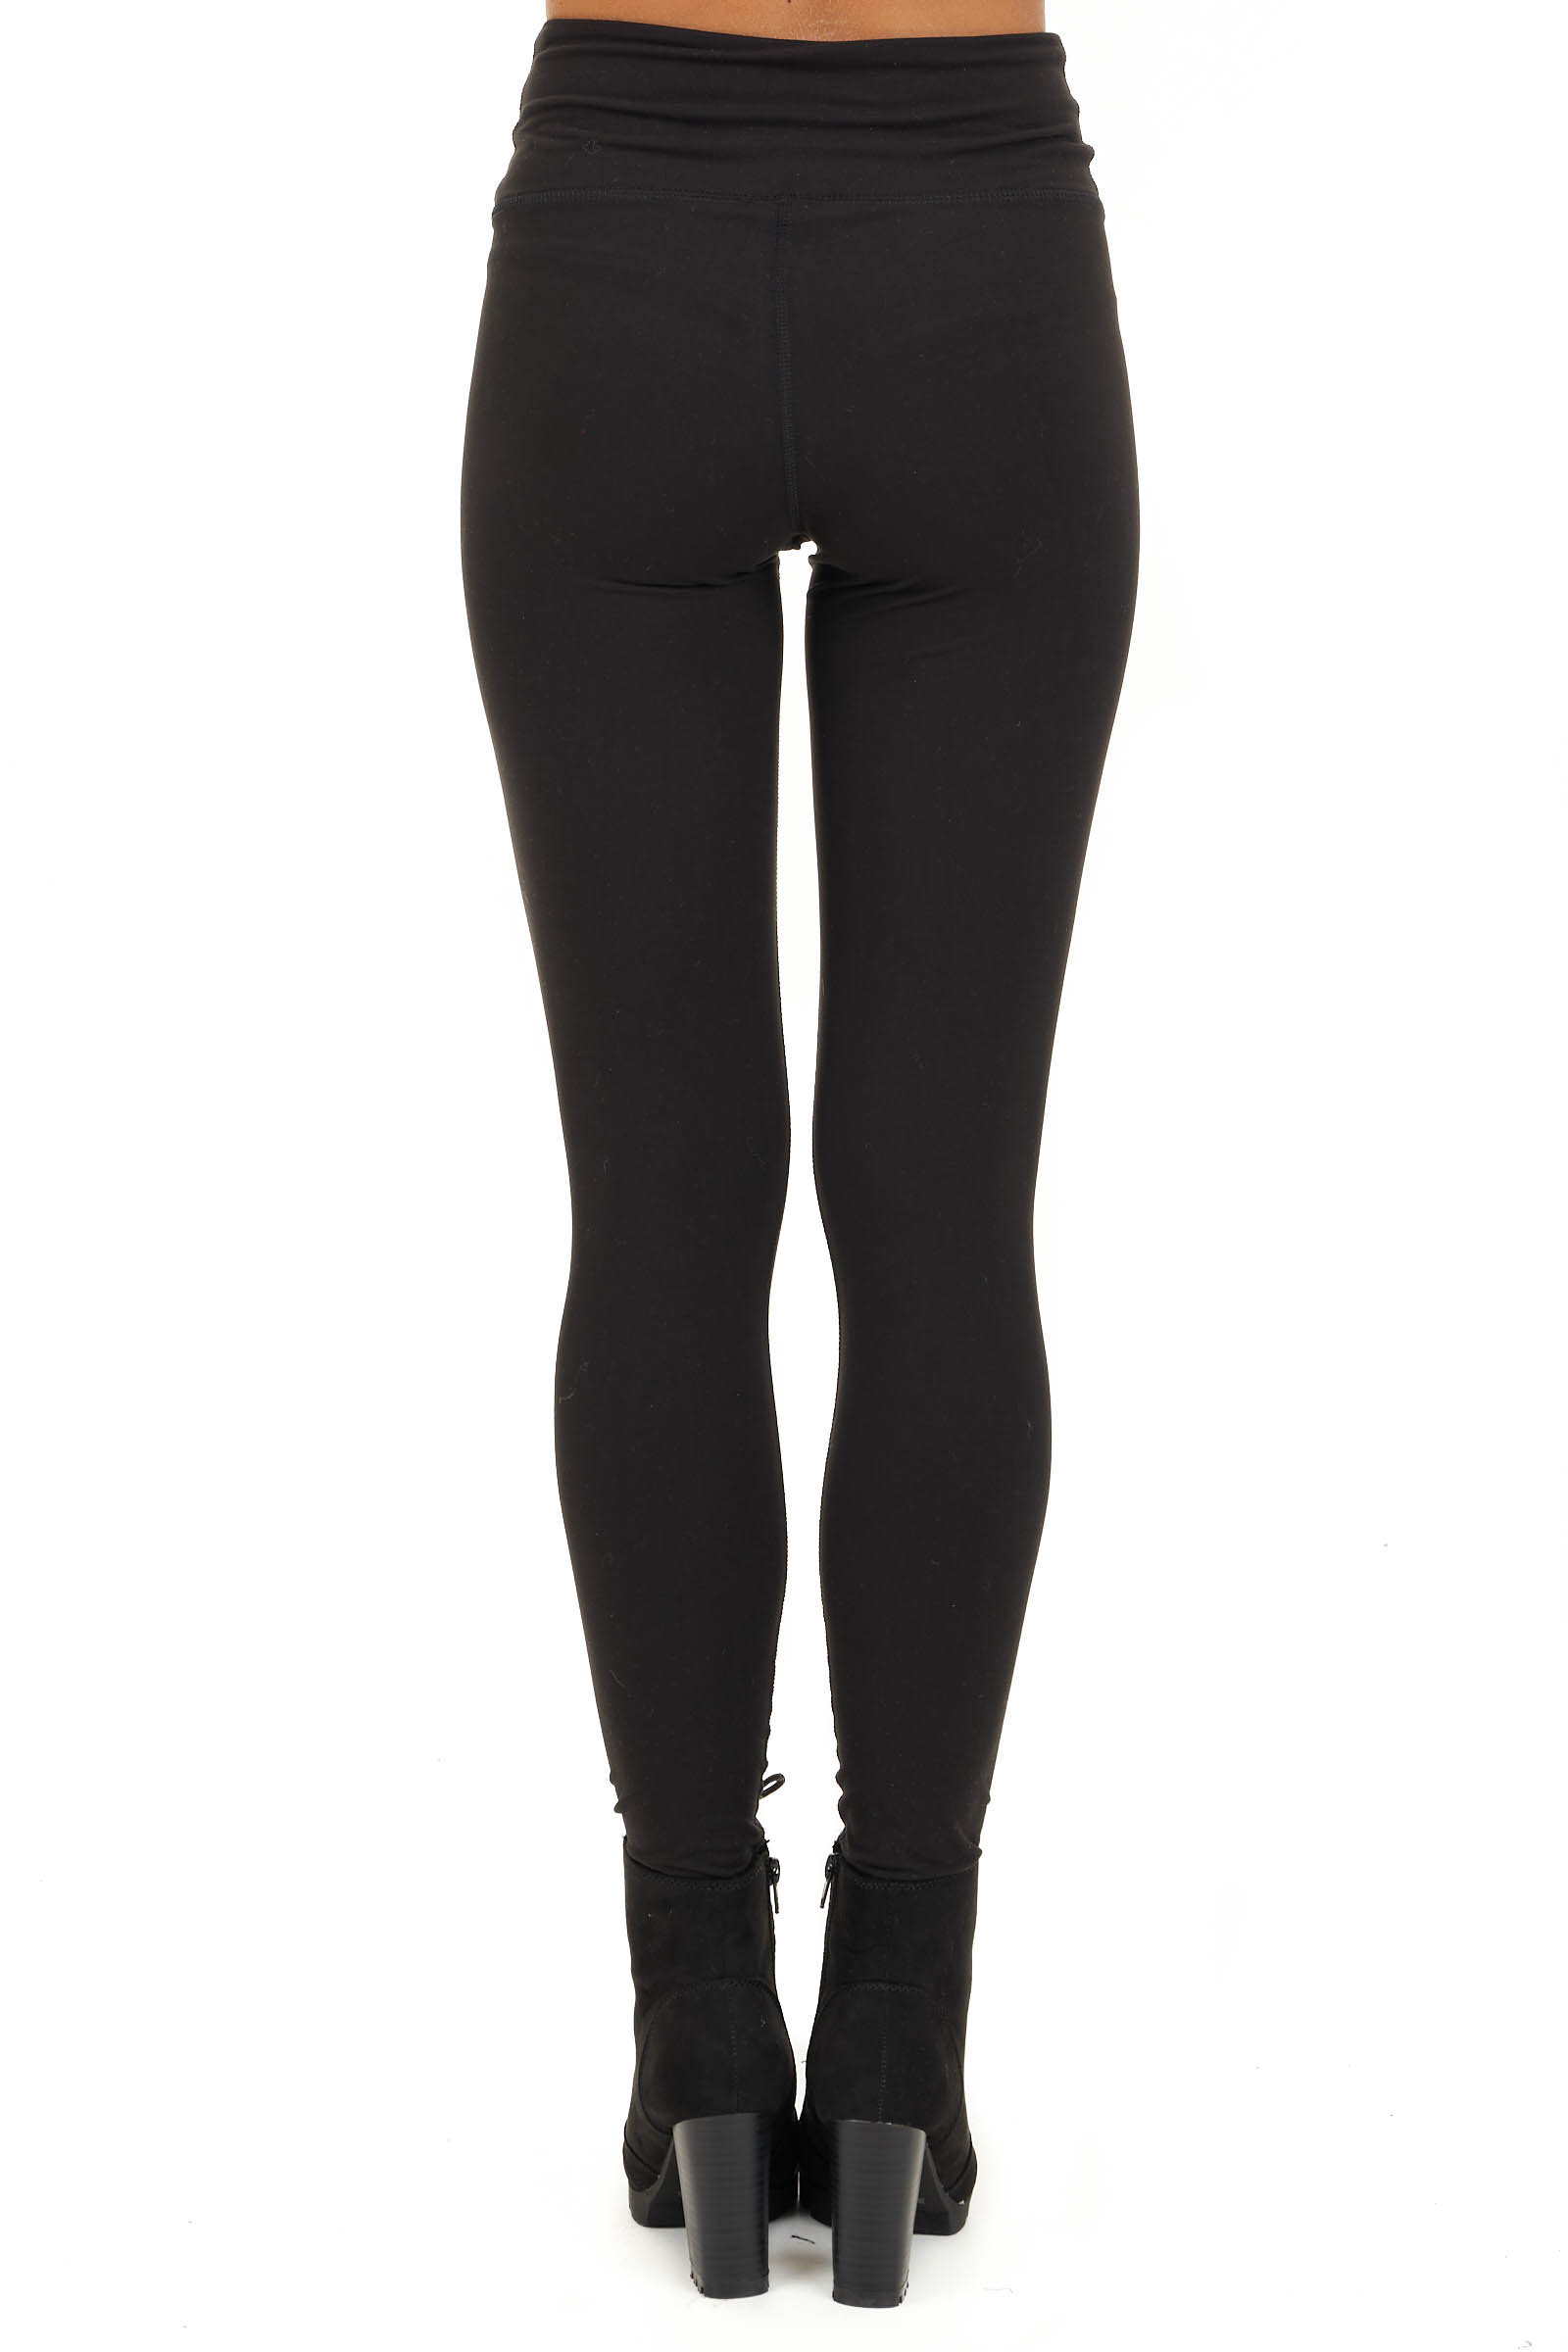 Black Solid Leggings with Laser Cutout Details back view